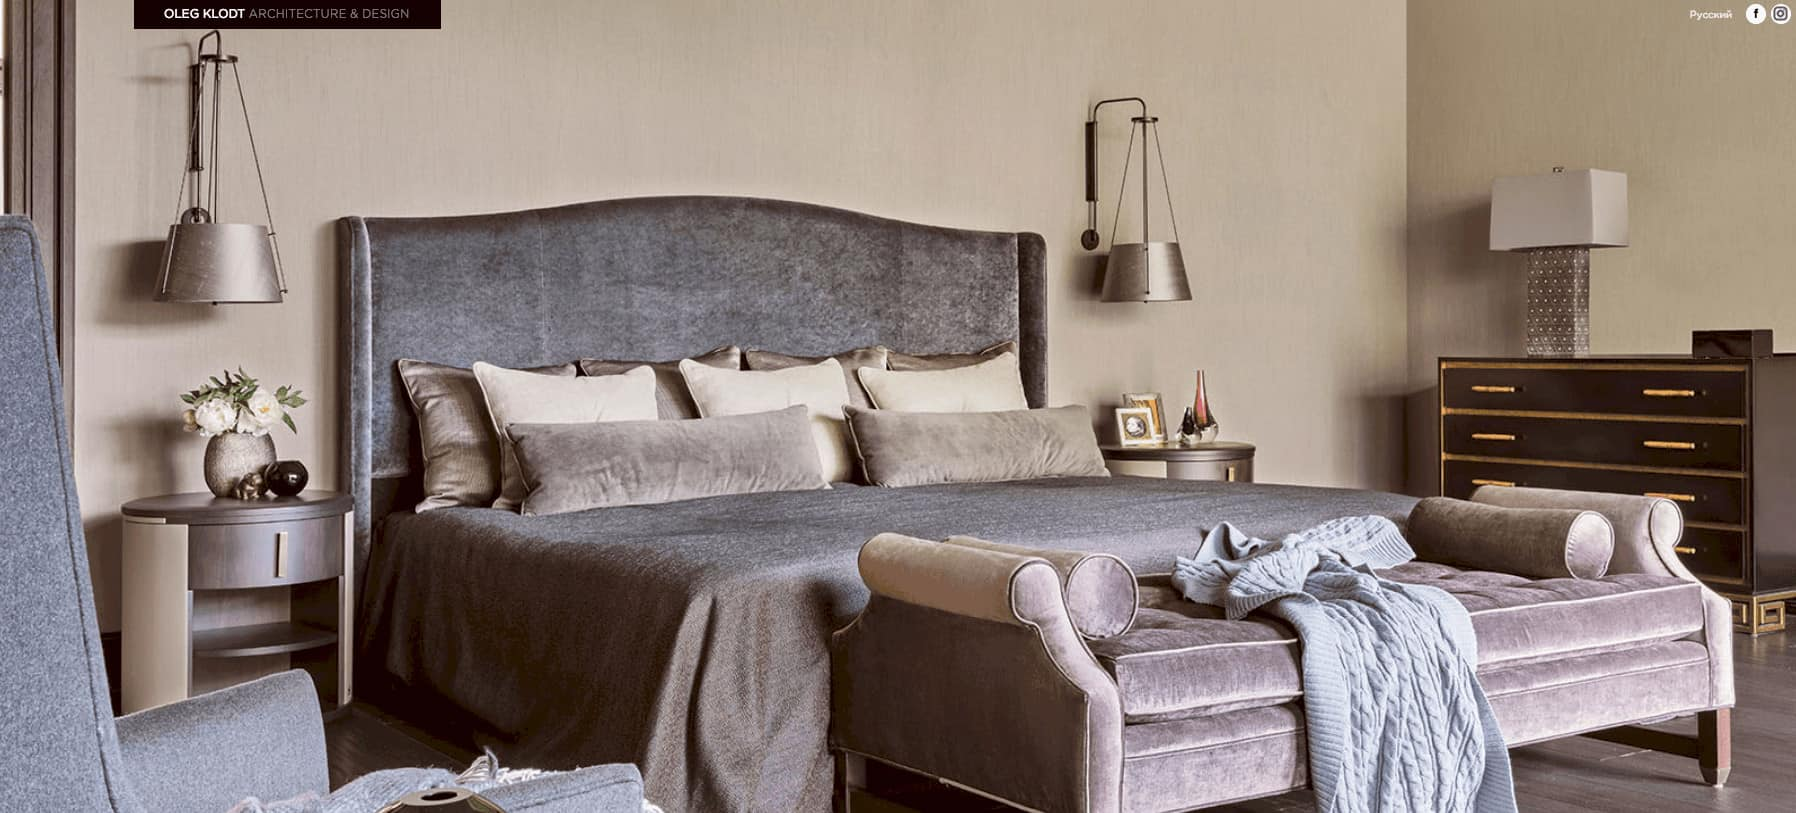 The gray velvet bed is paired with a gray velvet bench at the foot of the bed. This hue is also reflected on the bedside tables and the wall-mounted lights. This is given a nice background of beige walls and hardwood flooring.